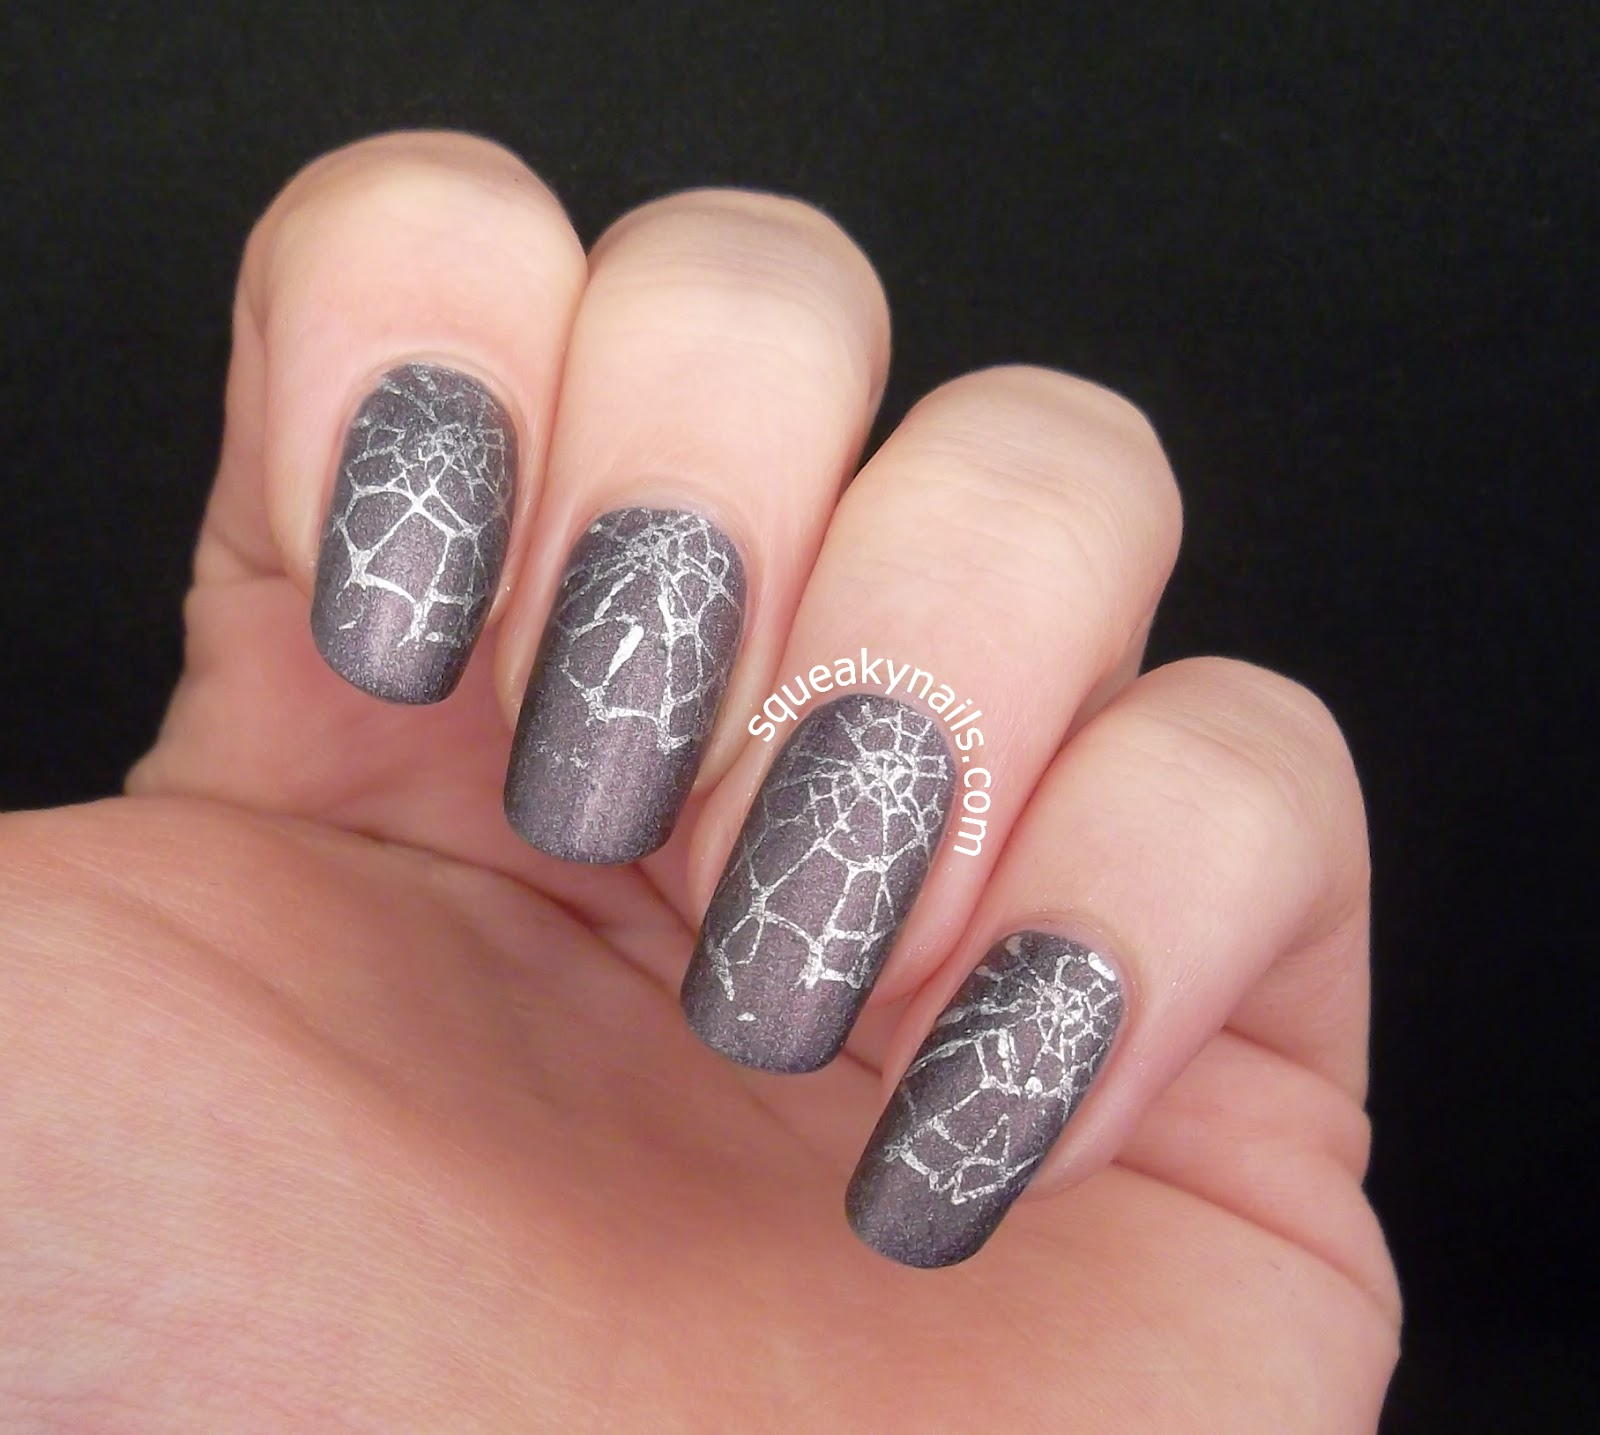 Halloween Nail Art Silver Spiderweb Stamping | Squeaky Nails